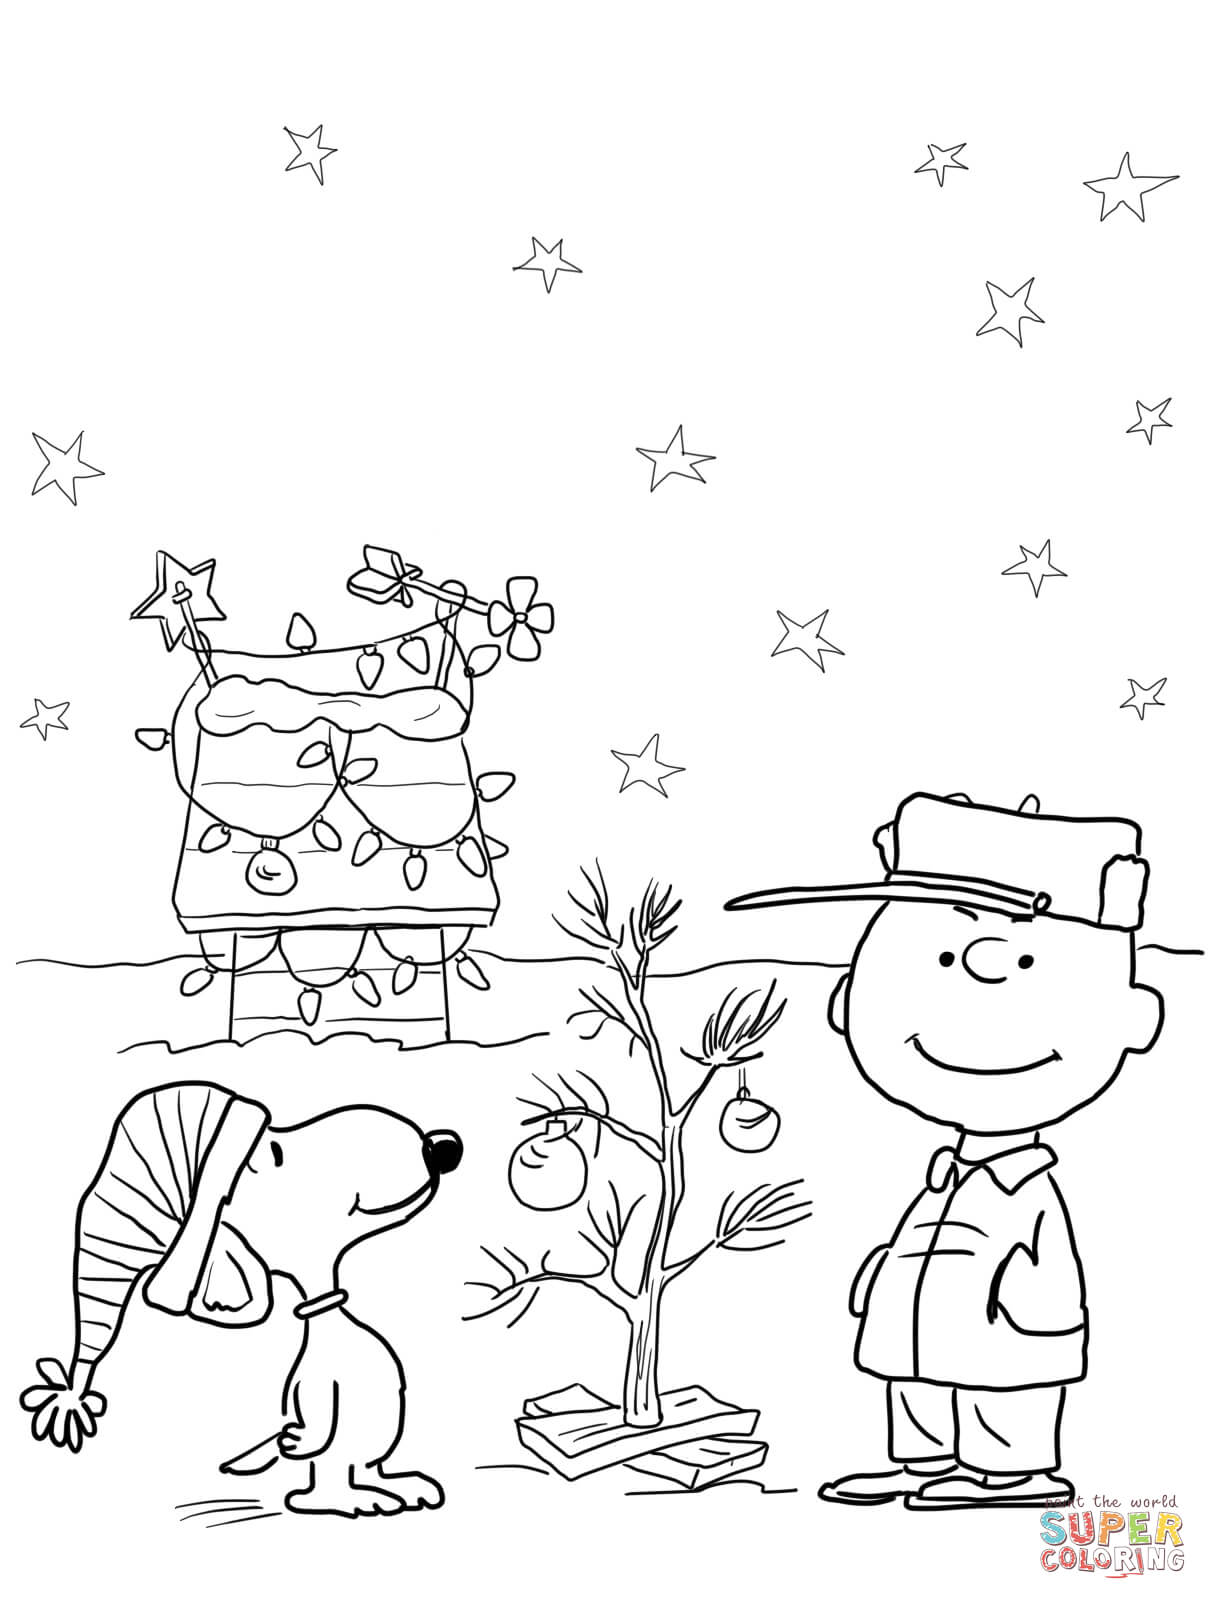 Christmas Coloring Book Online With Charlie Brown Page Free Printable Pages